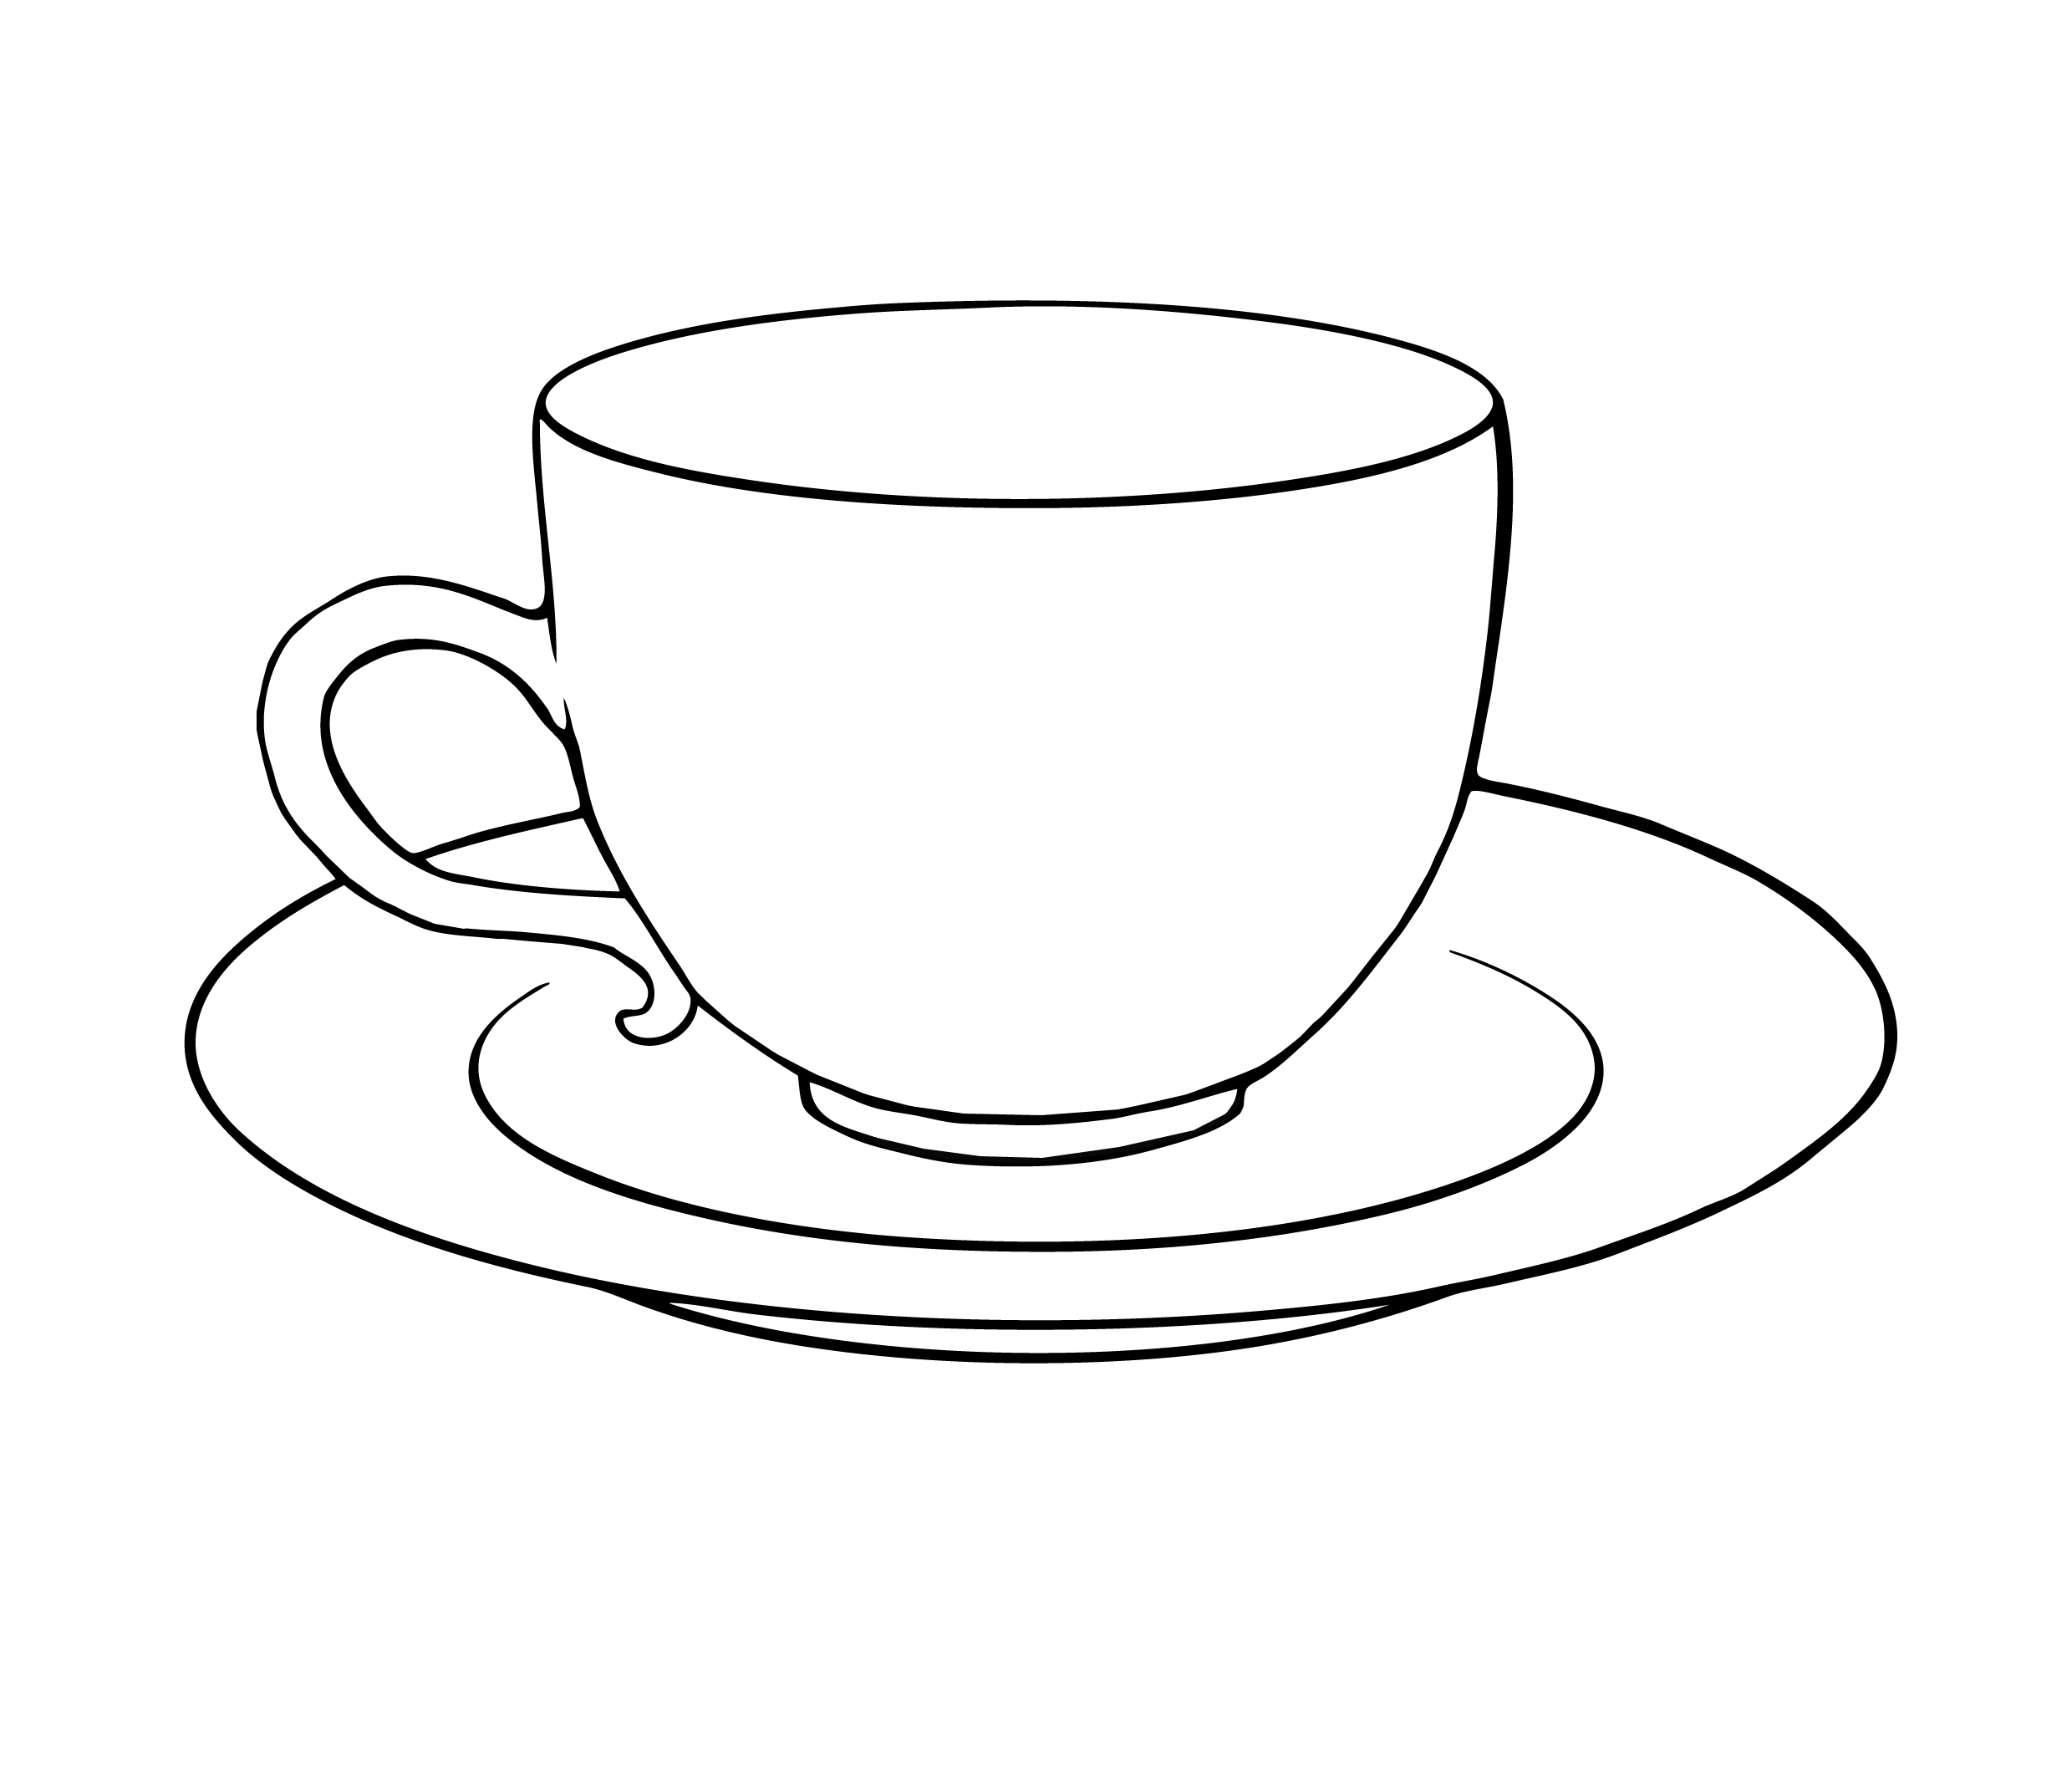 Drawn teapot outline Drawing And Page Cup Coloring